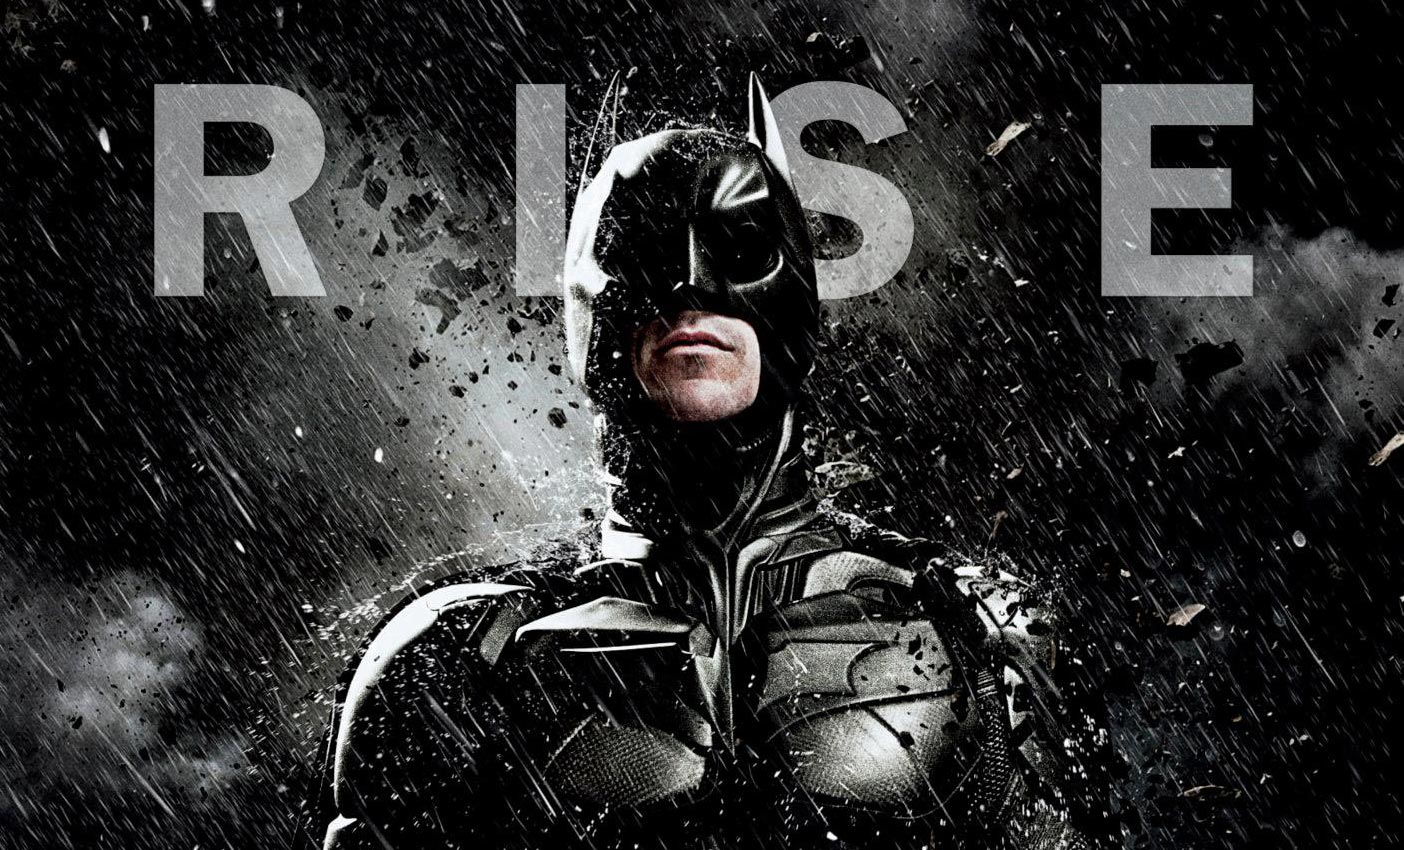 movie review the dark knight rises The epic, unwieldy conclusion to the dark knight trilogy is everything that made its predecessors great but it can't rise as high as the bar had been set.